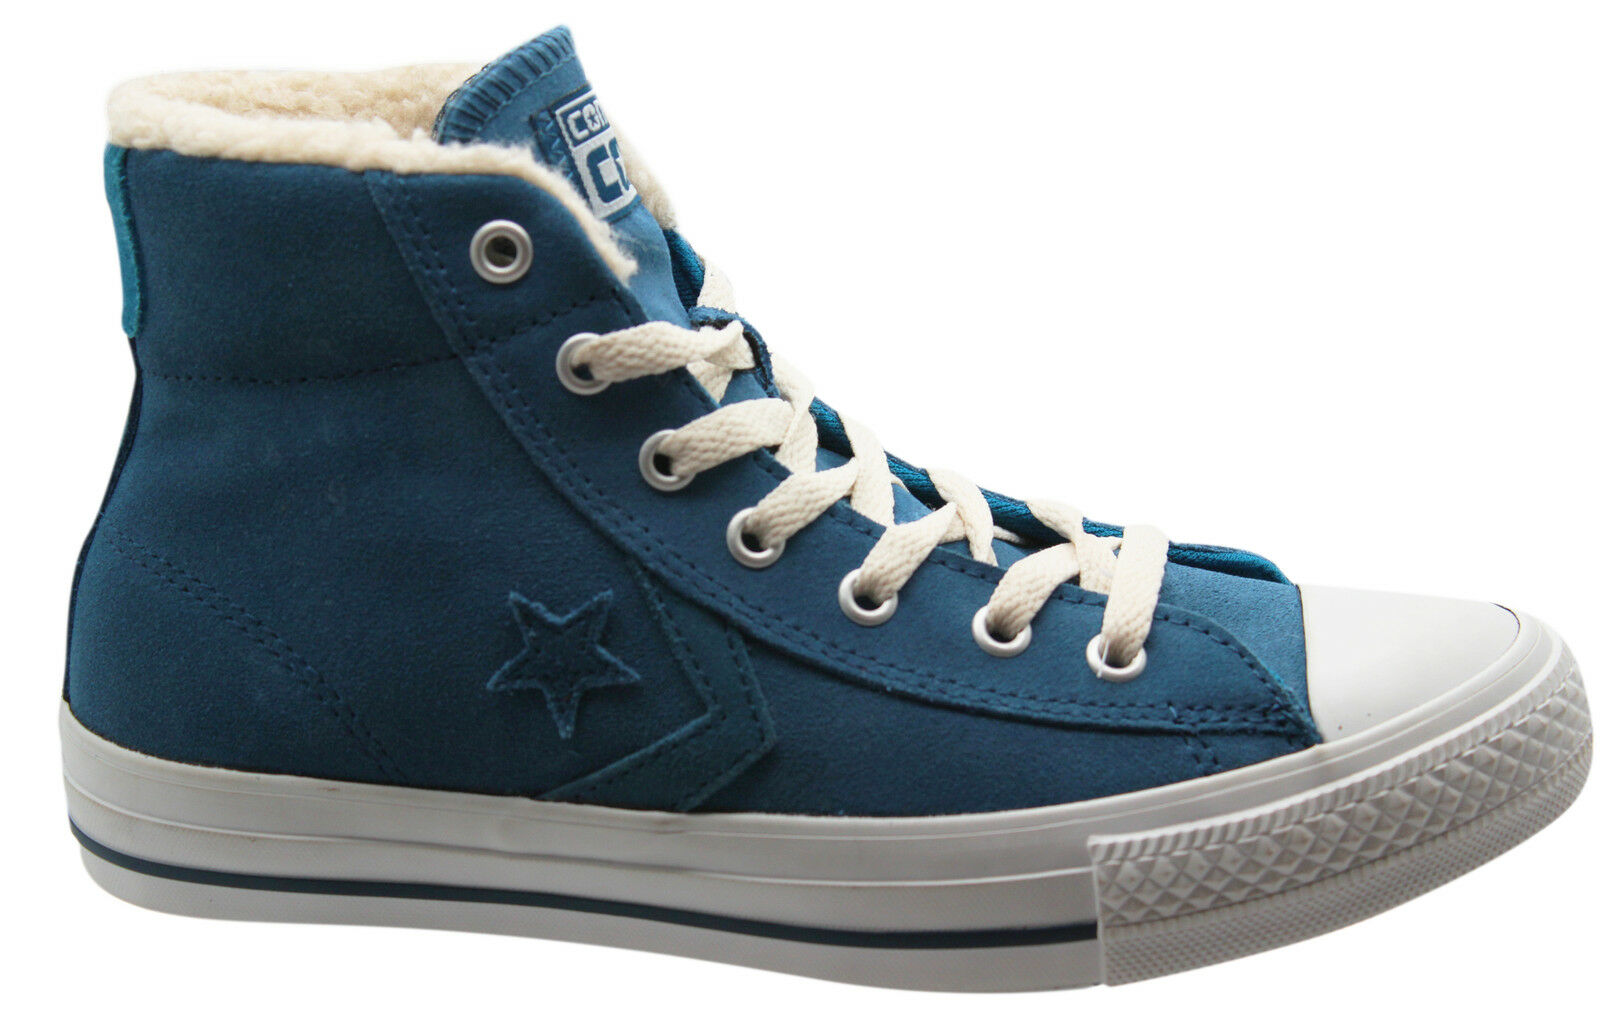 CONVERSE Chuck Taylor Unisex Star Plyr Mid Trainers Blue